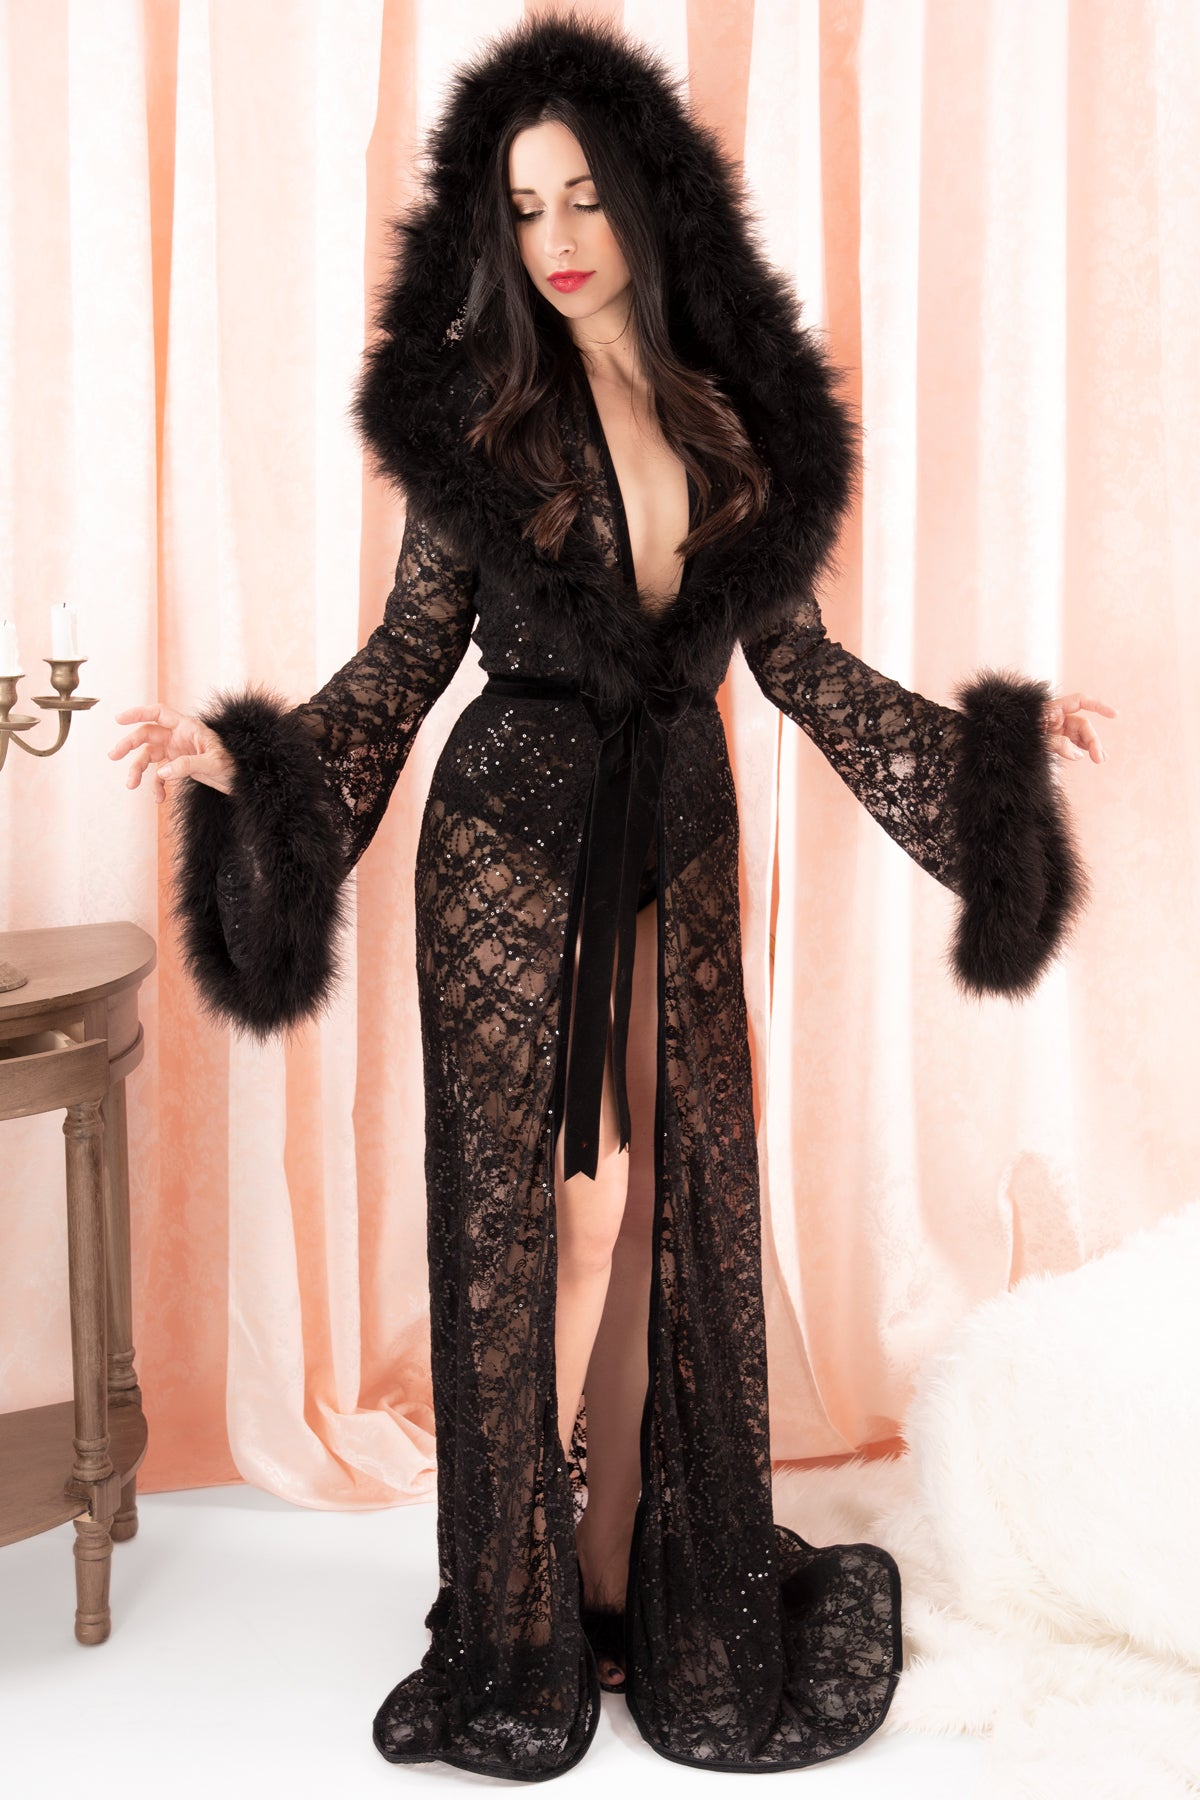 Sophie Long Hooded Plunge Robe